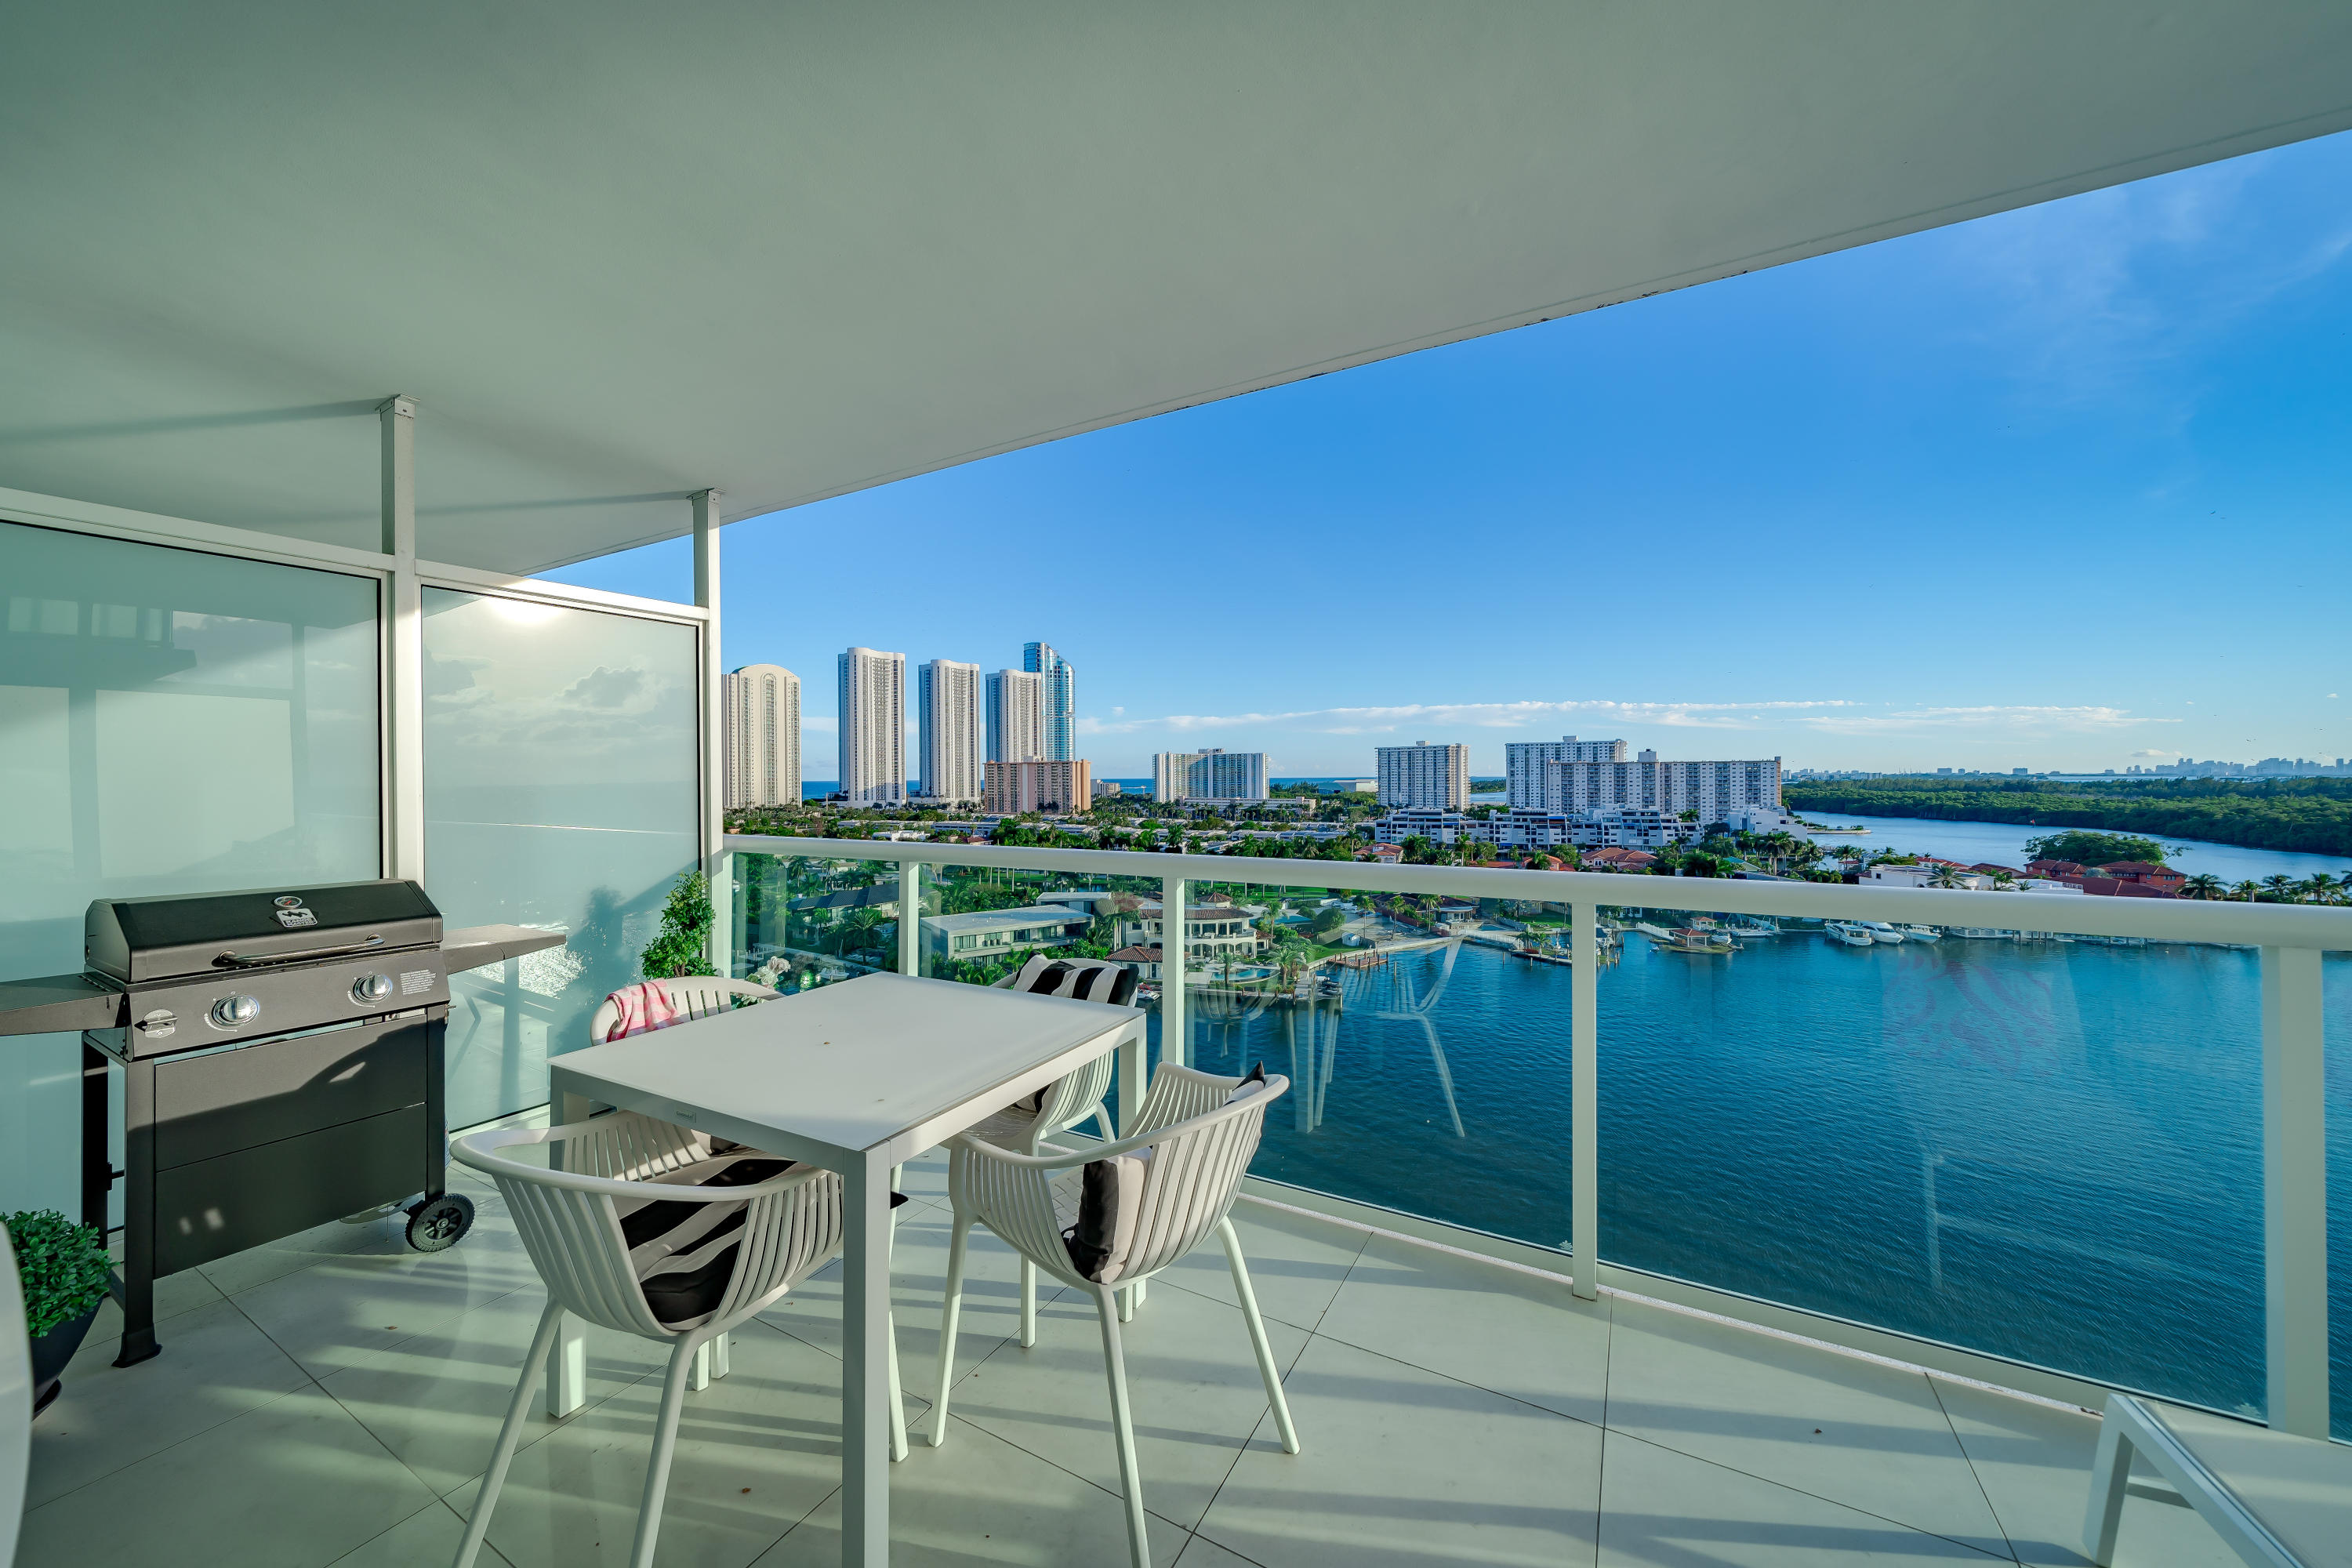 400 Sunny Isles Boulevard, Sunny Isles Beach, Florida 33160, 3 Bedrooms Bedrooms, ,2 BathroomsBathrooms,Residential,For Sale,Sunny Isles,RX-10580904